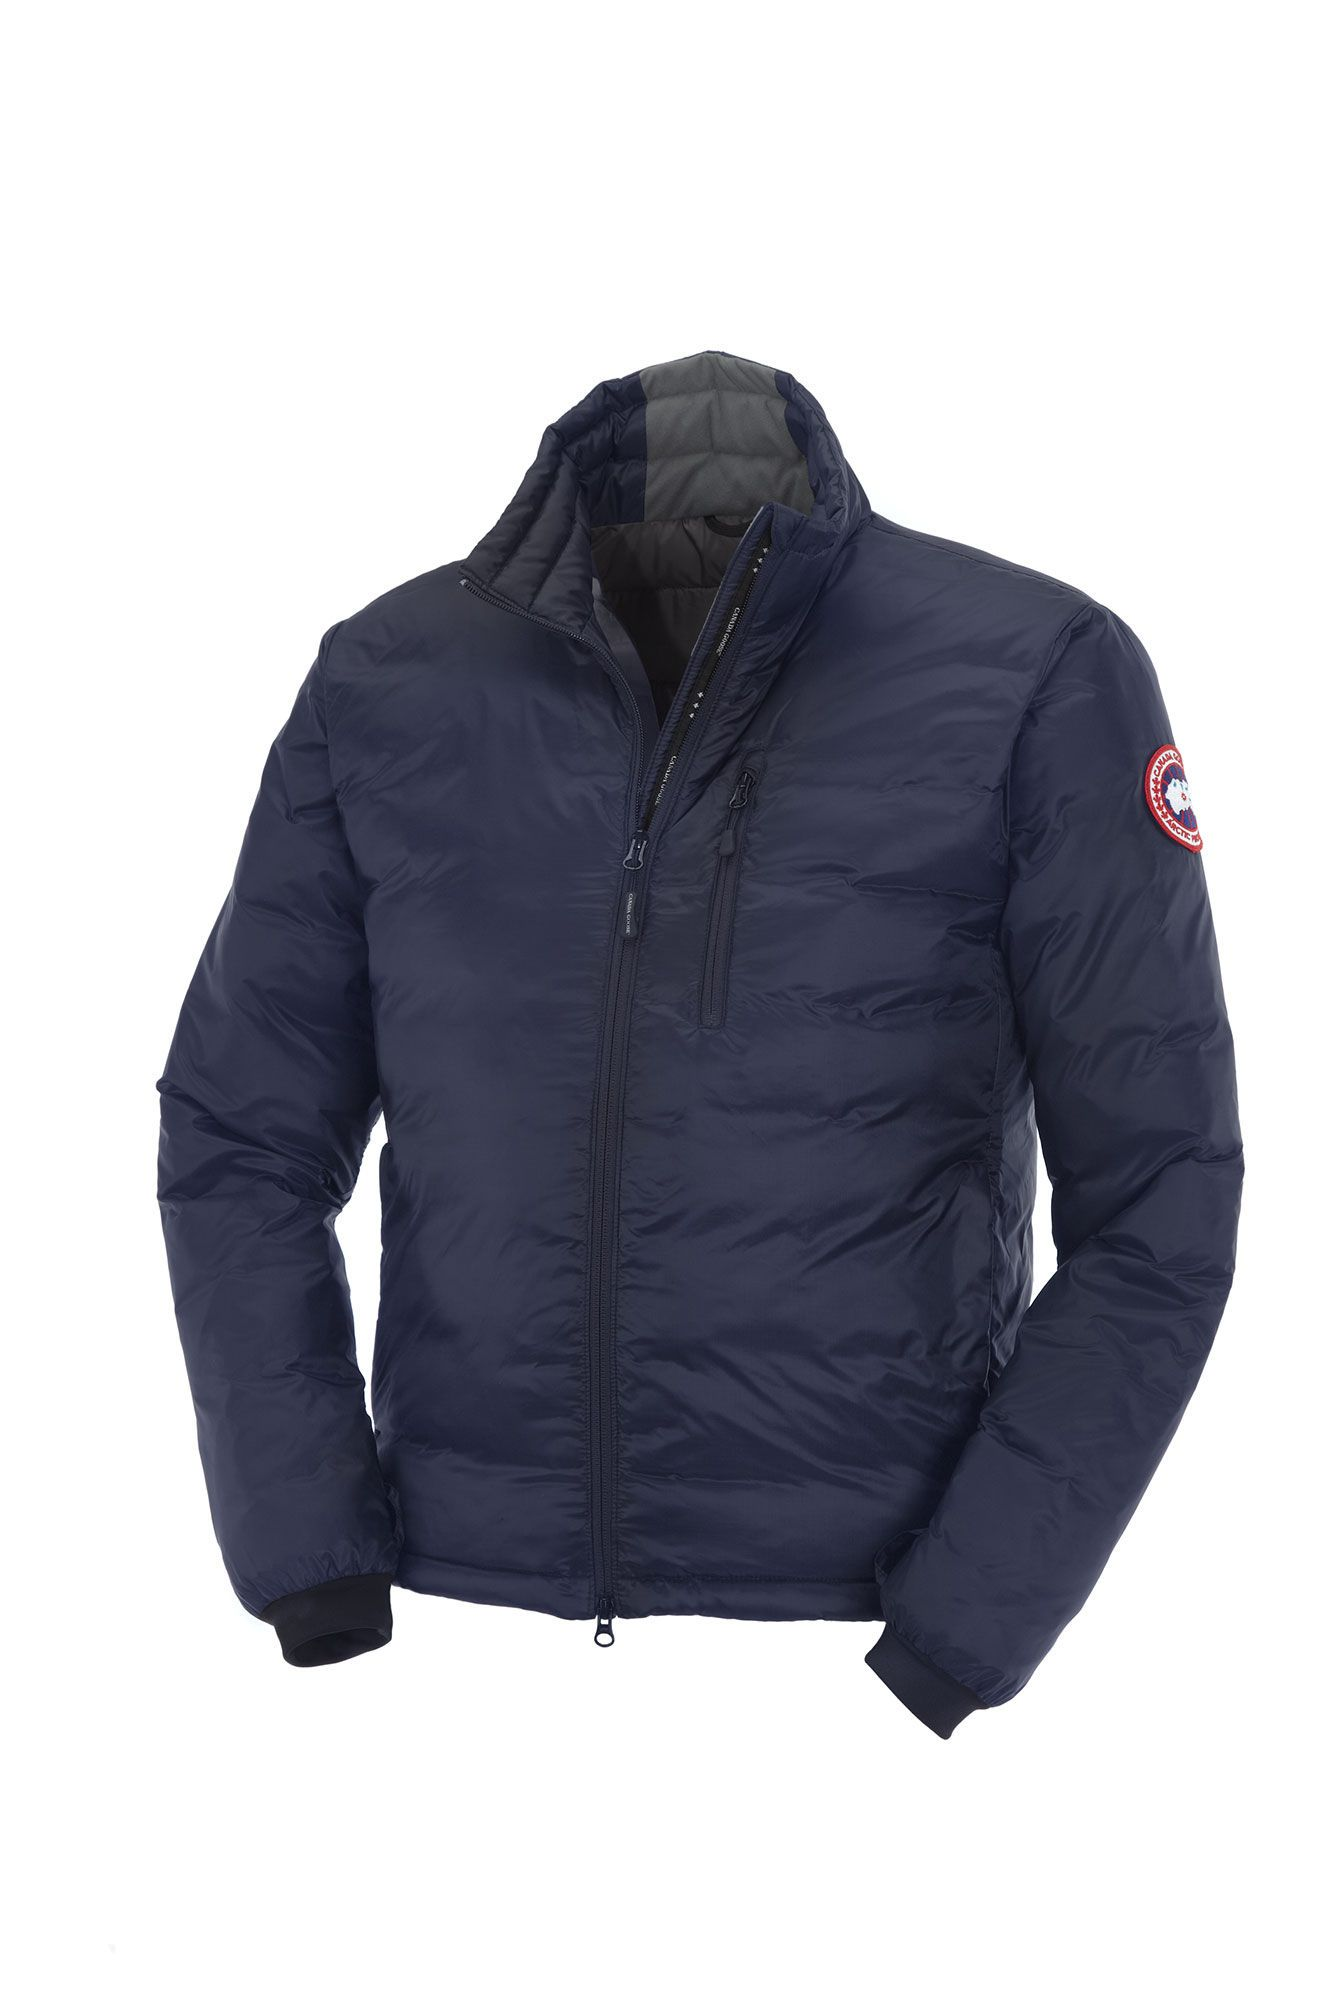 Lodge Down Jacket | Canada Goose